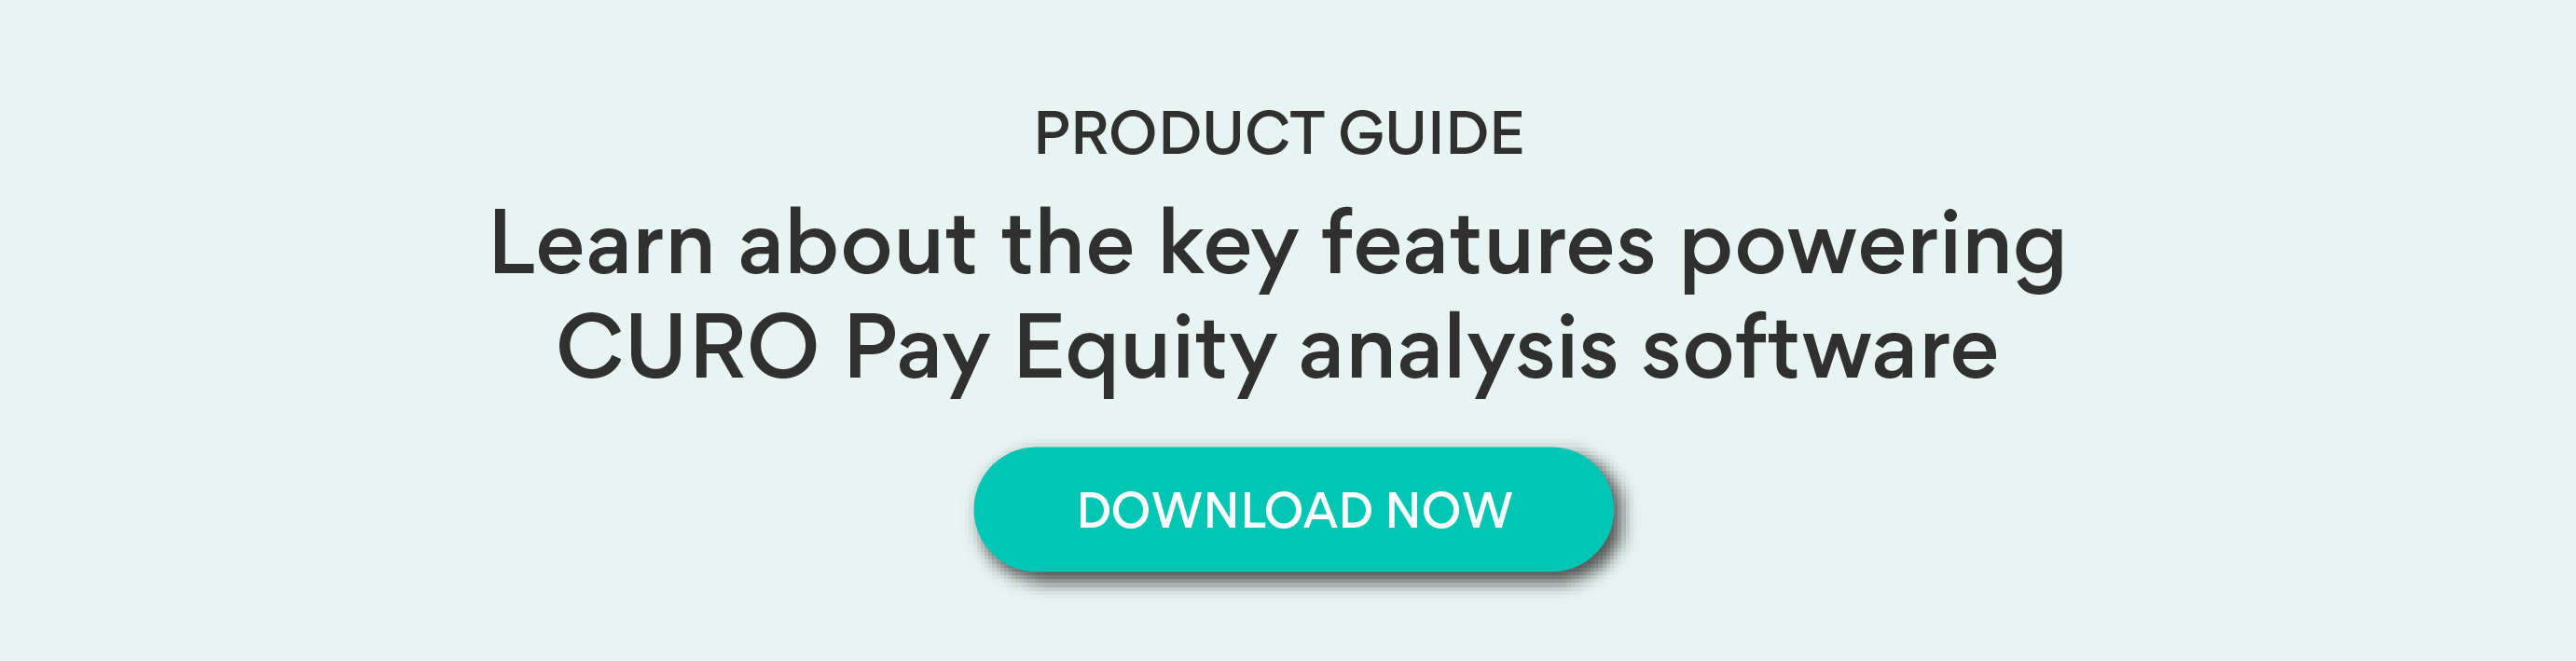 Download CURO Pay Equity product guide